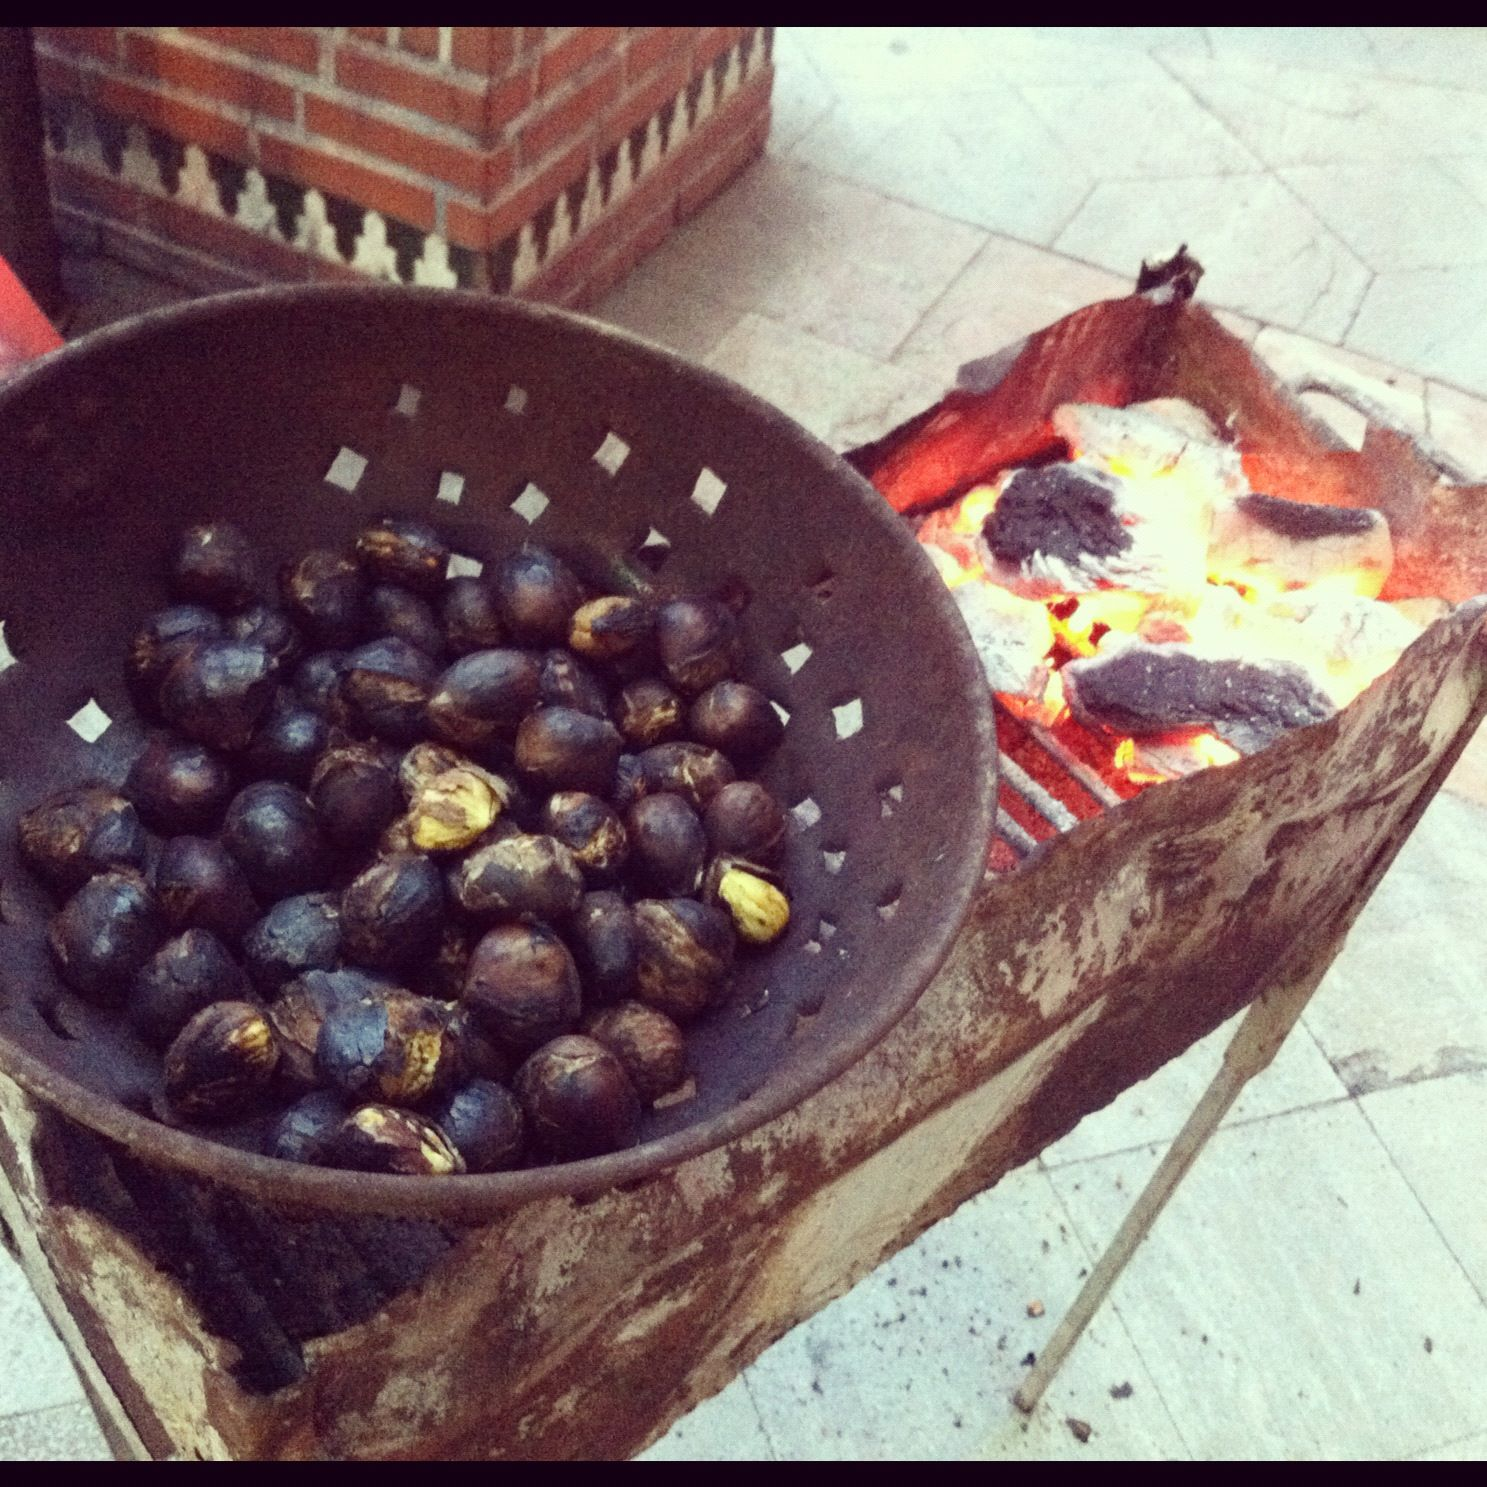 Roast chestnuts on every corner great smell wafting around granada roast chestnuts on every corner great smell wafting around granada streets at christmas portuguese recipesspanish food forumfinder Choice Image